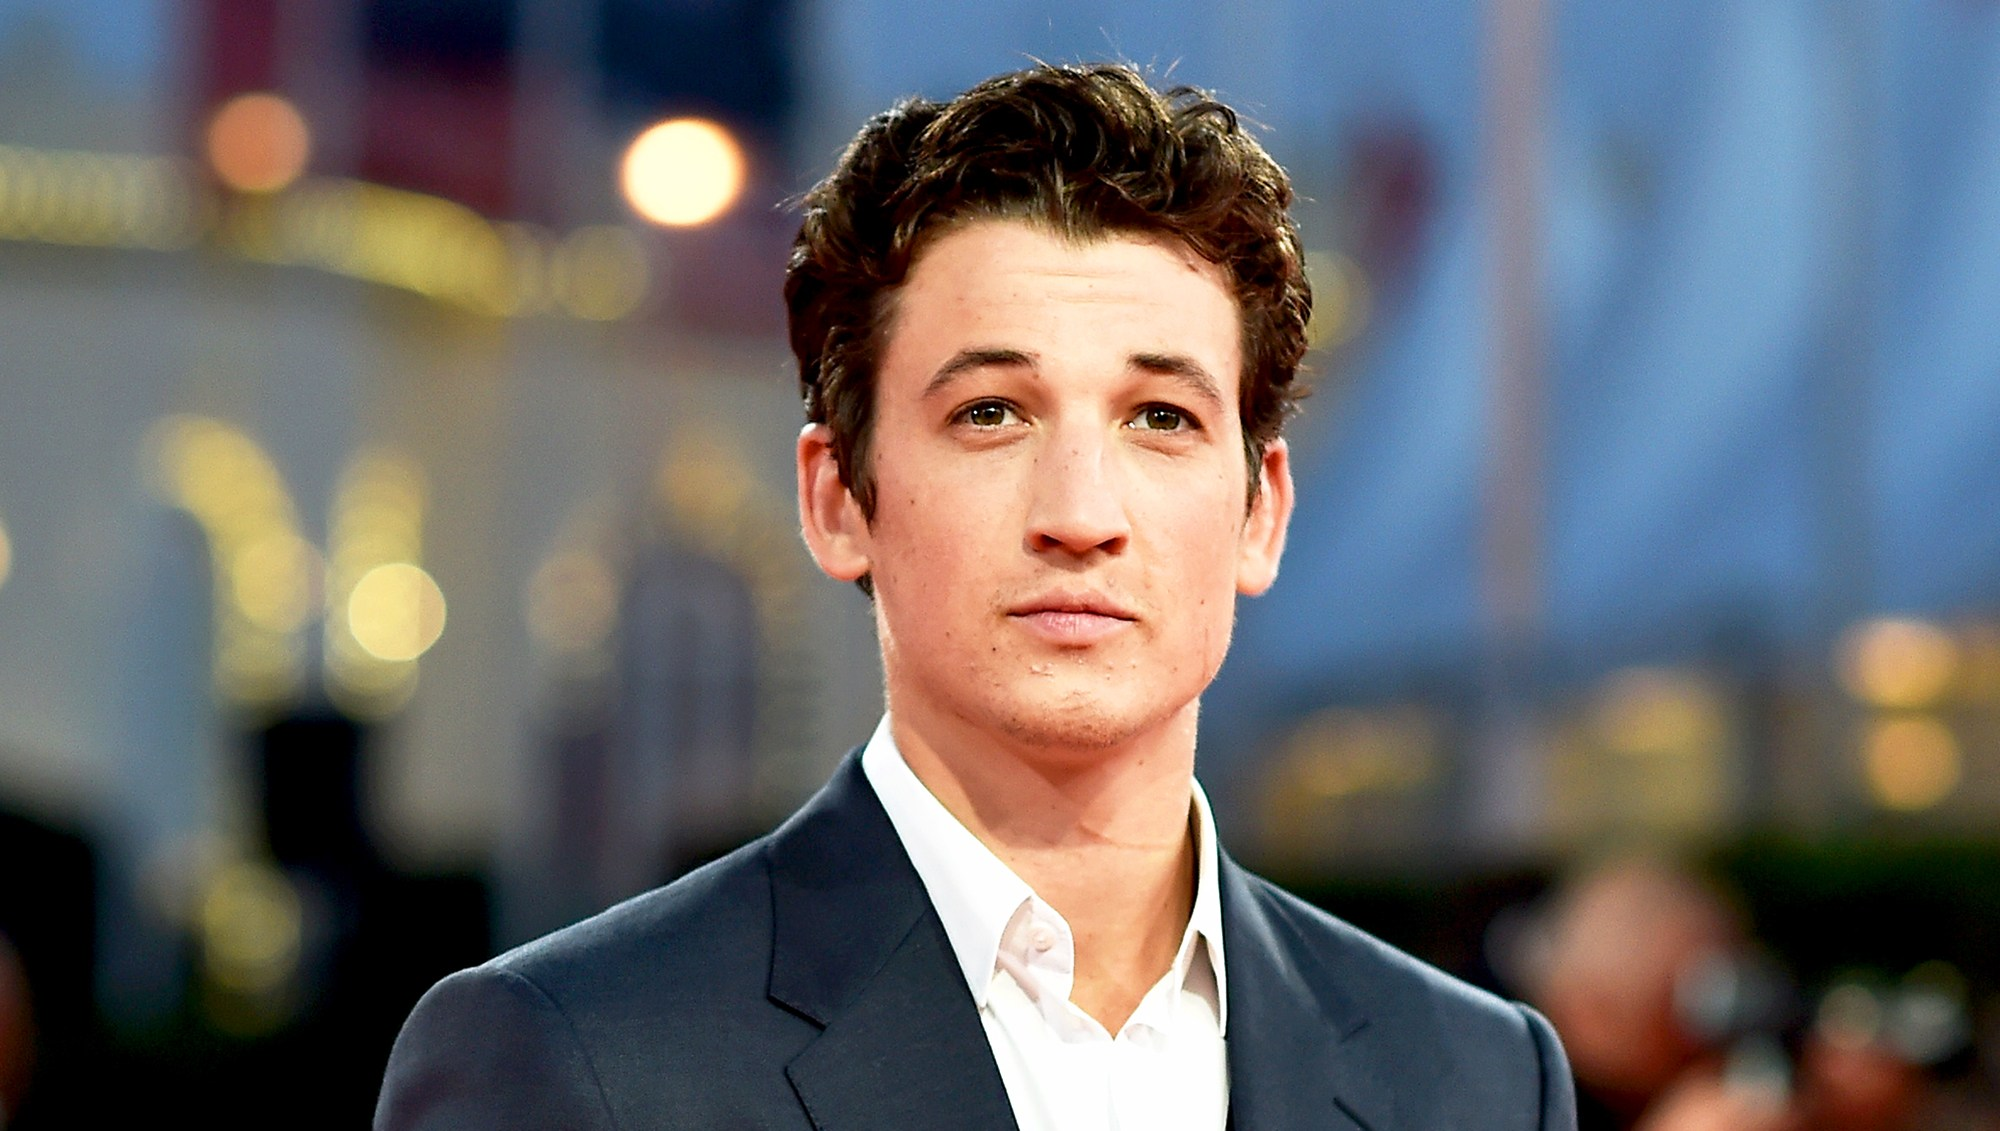 """Miles Teller attends """"The November man"""" 2014 premiere in Deauville, France."""